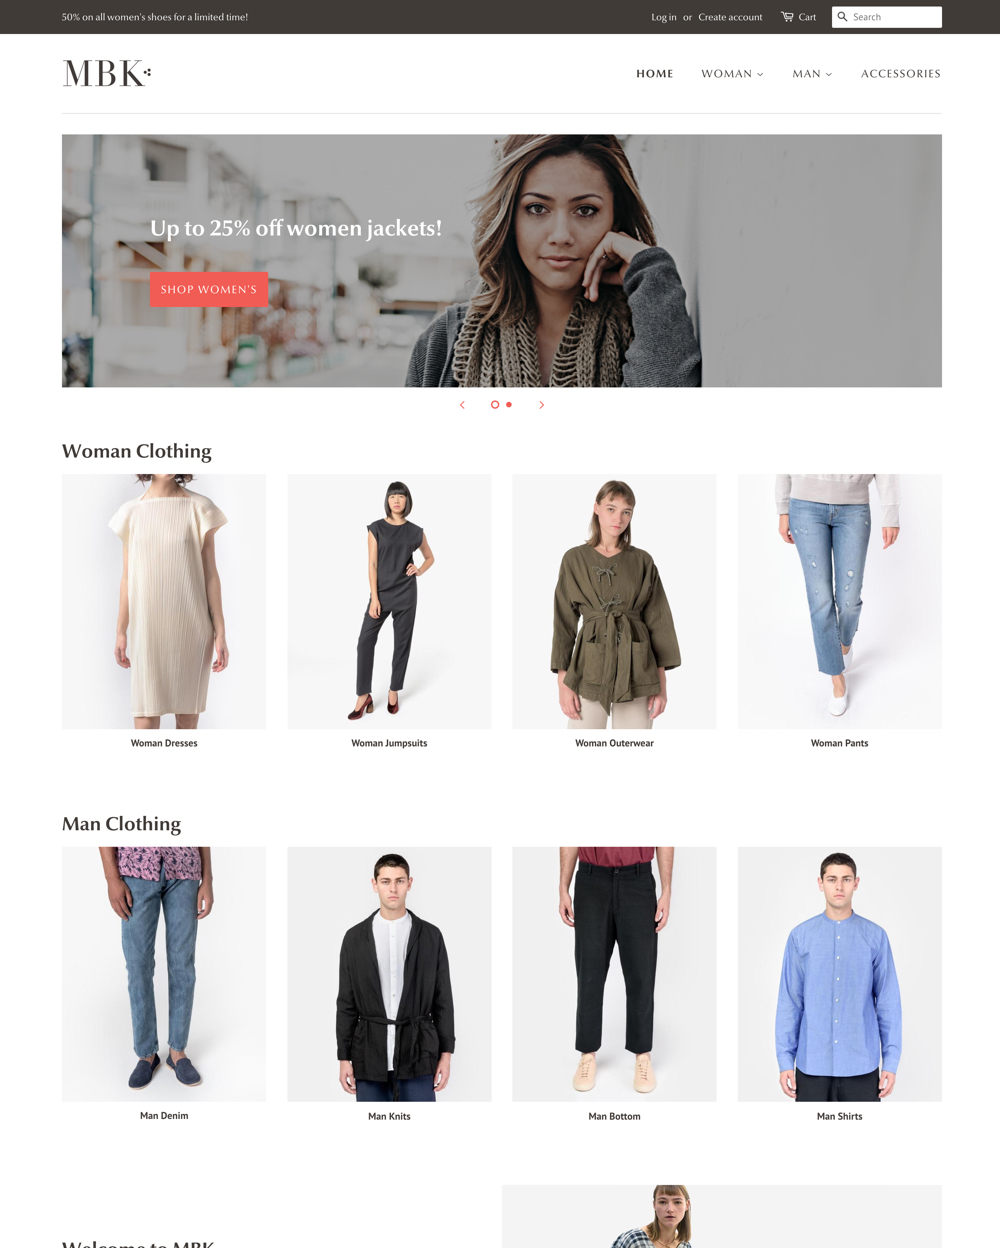 Desktop preview for the Minimal - Fashion theme